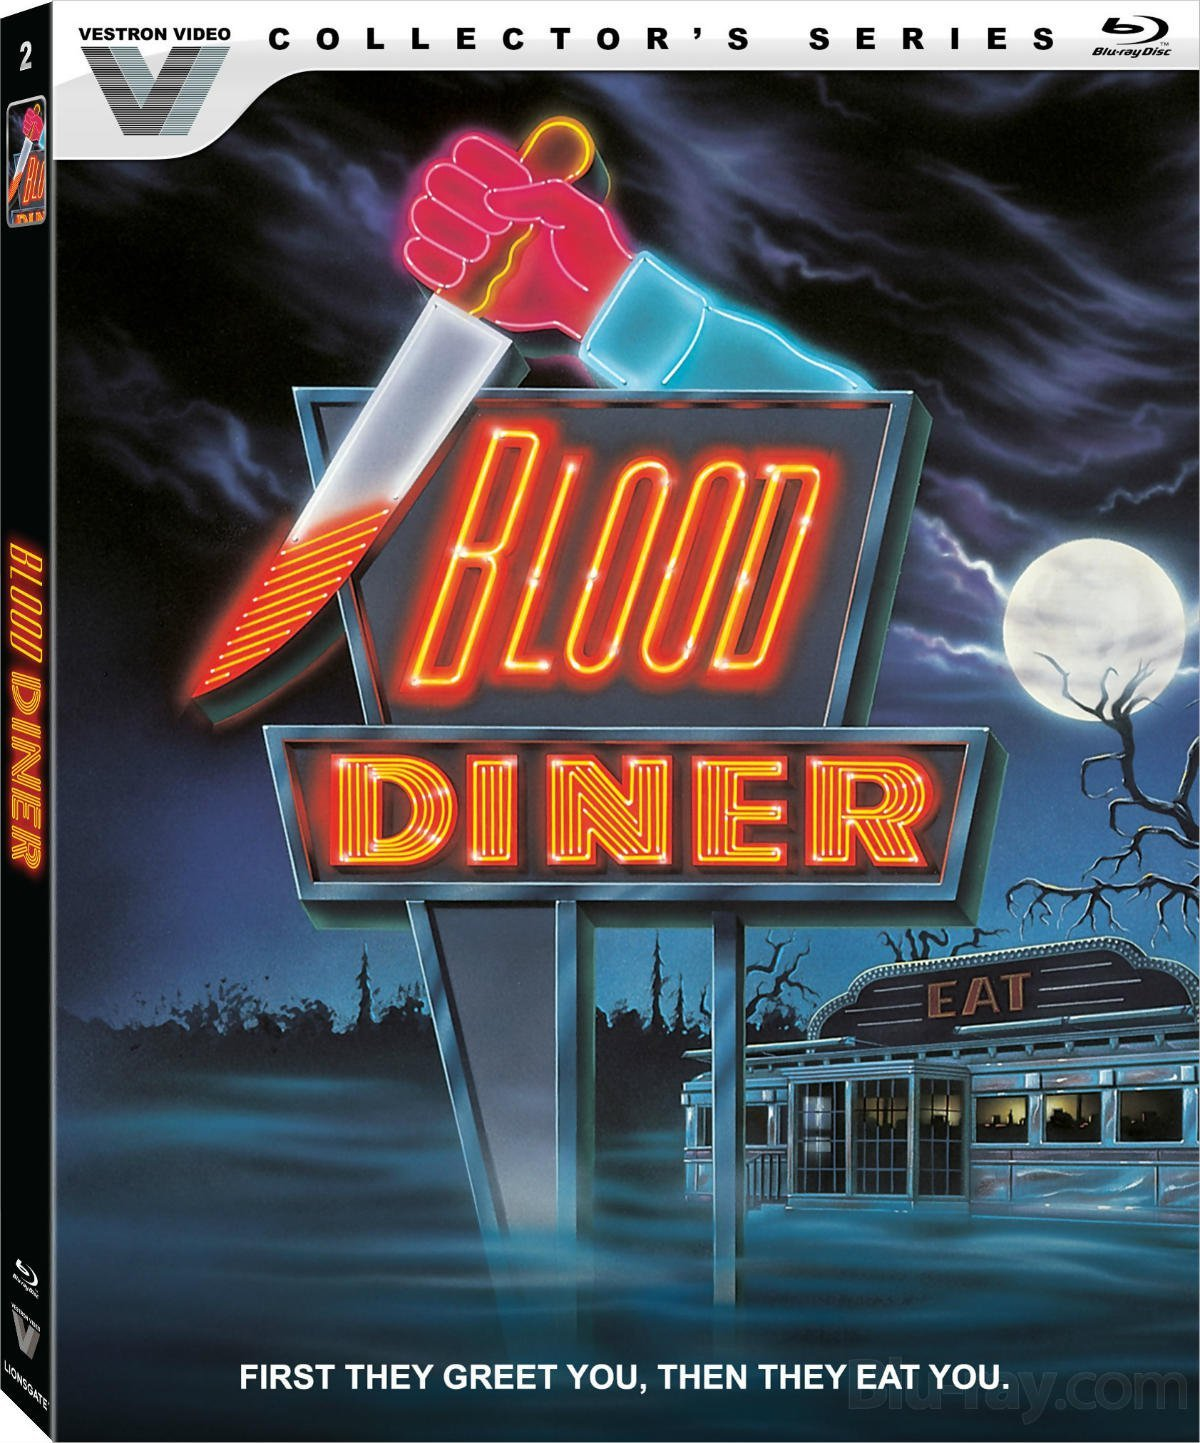 blood-diner-blu-ray-10